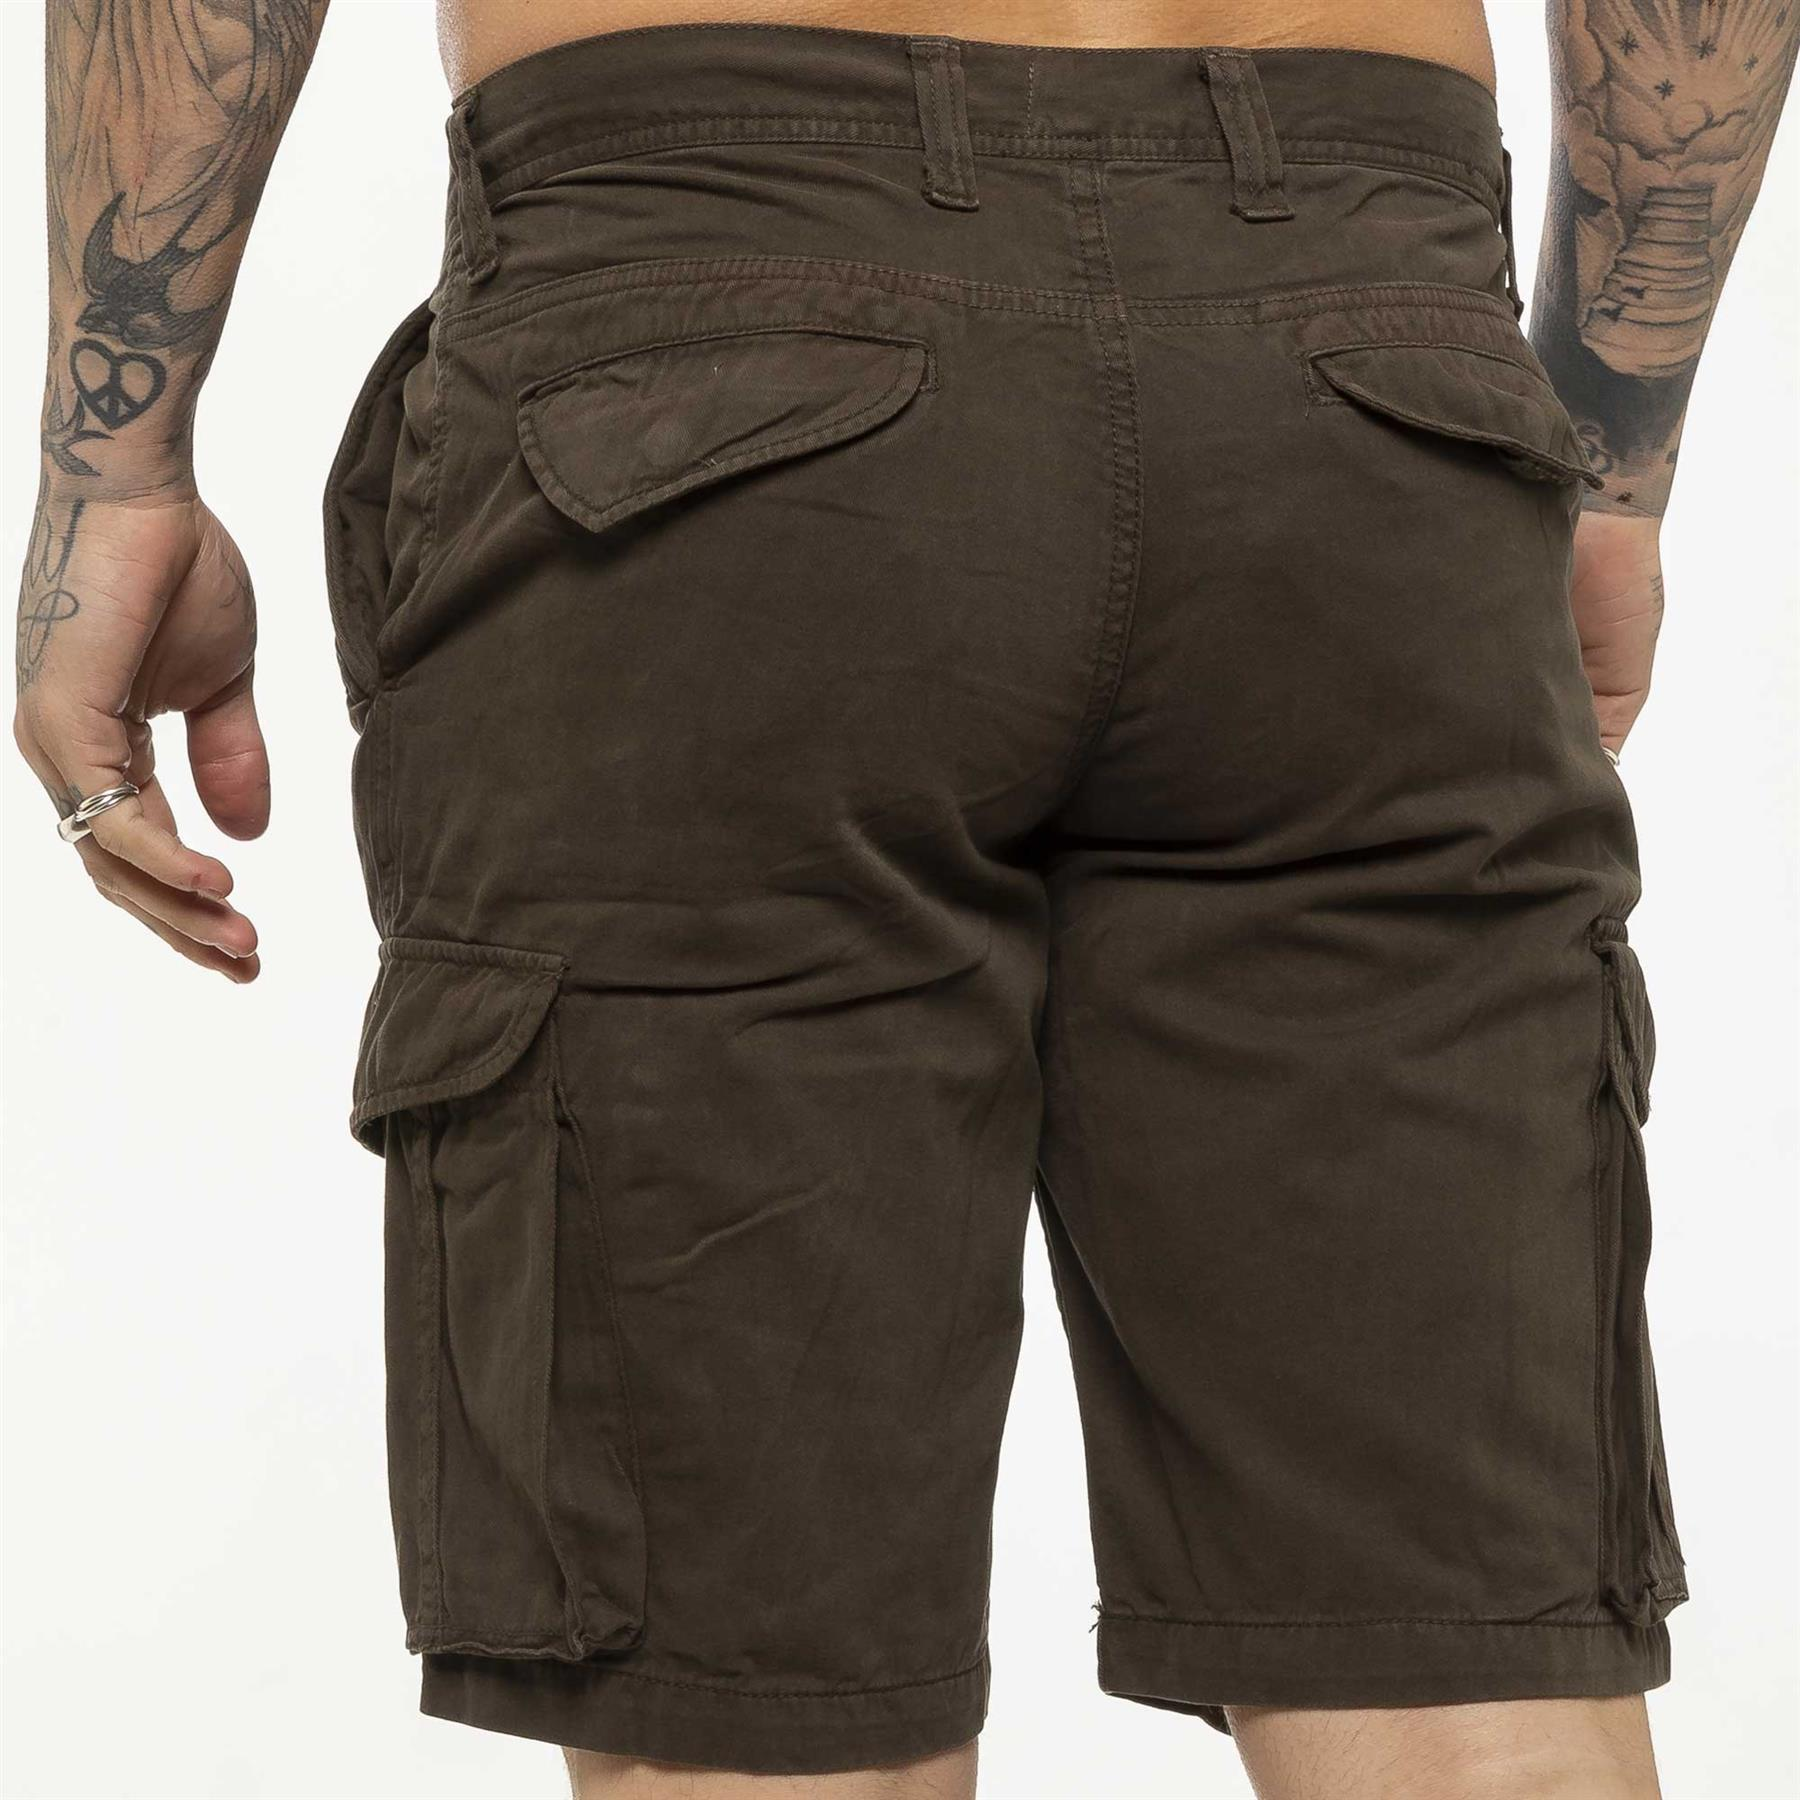 thumbnail 47 - Kruze Jeans Mens Army Combat Shorts Camouflage Cargo Casual Camo Work Half Pants